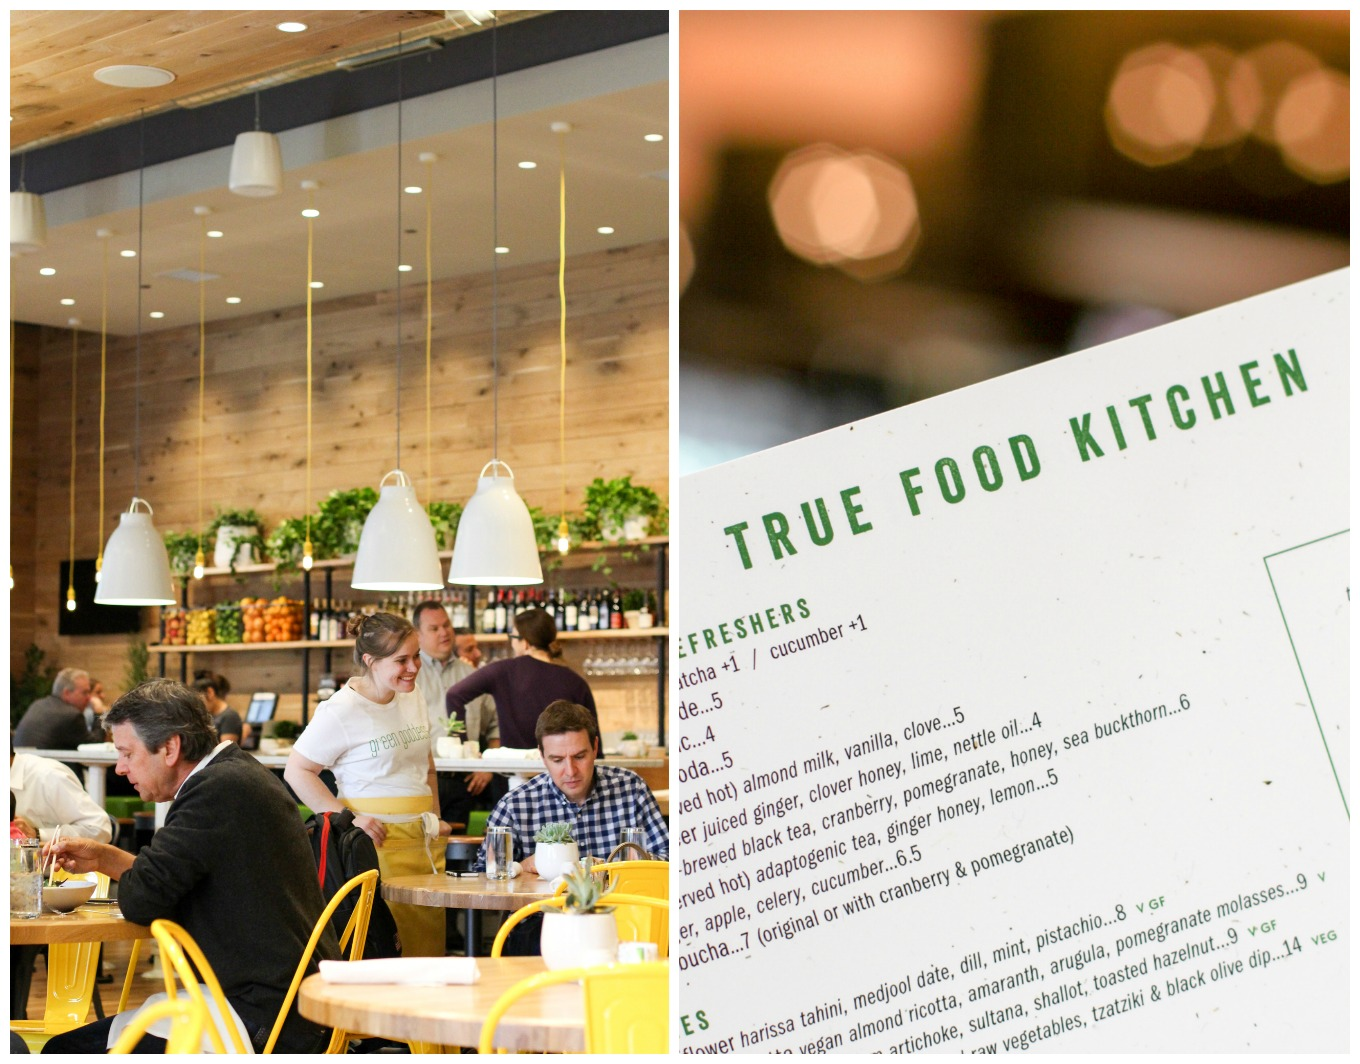 True Food Kitchen comes to Chicago! - Lake Shore Lady